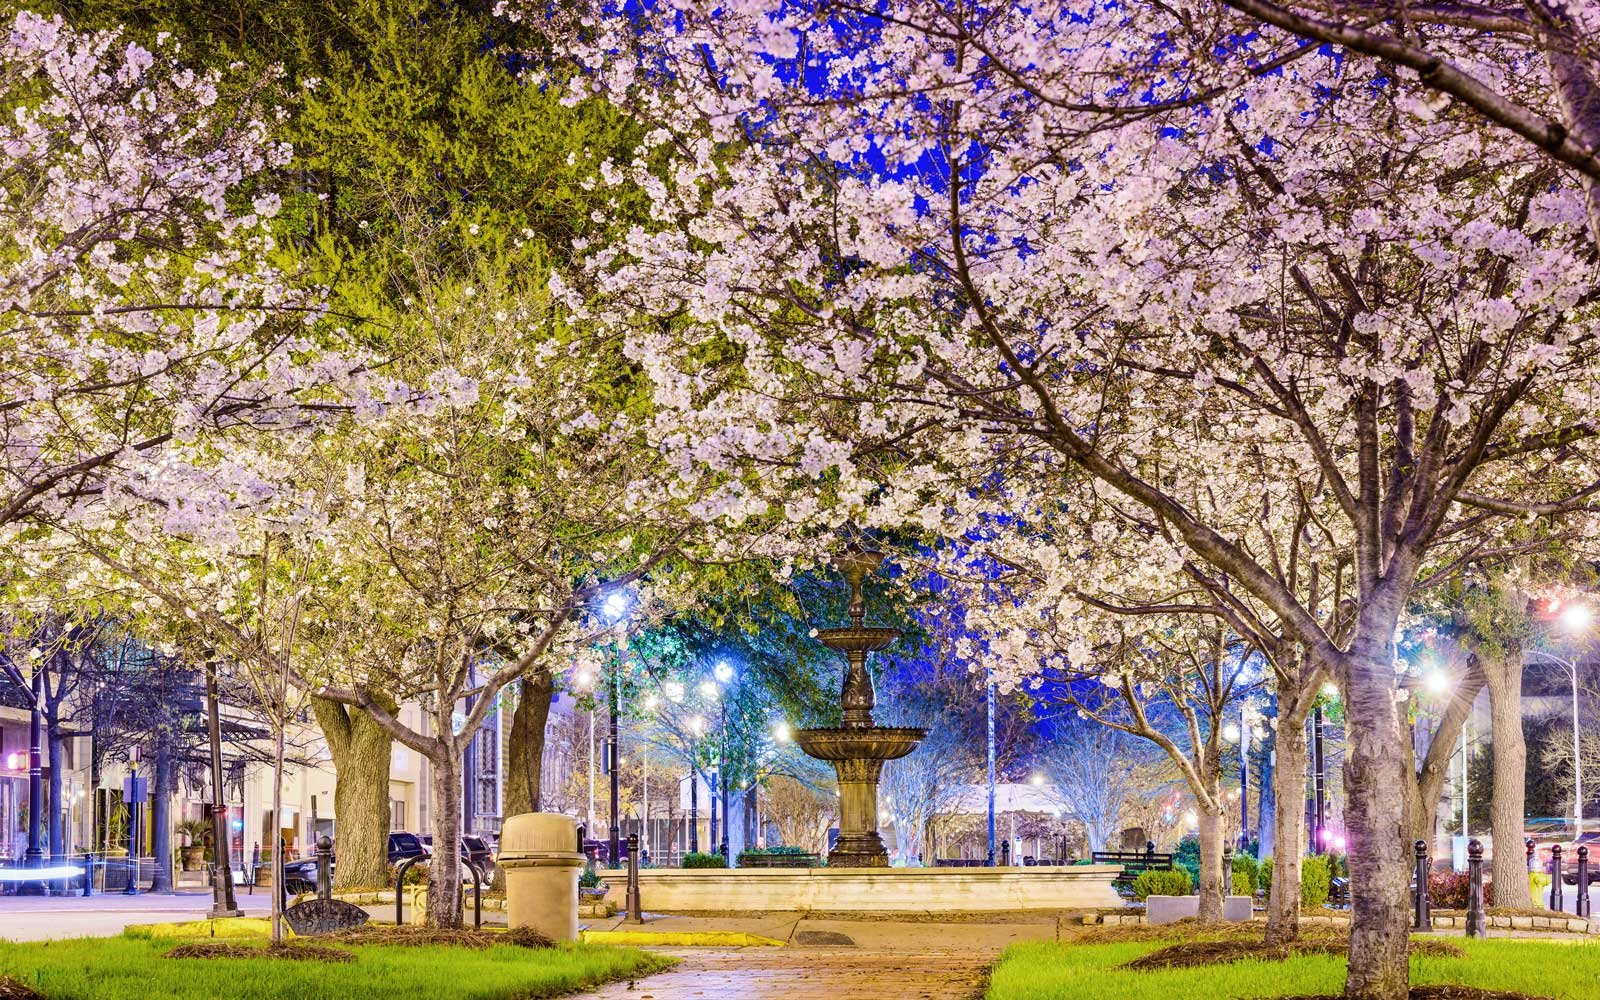 Cherry blossoms blooming in Macon, Georgia